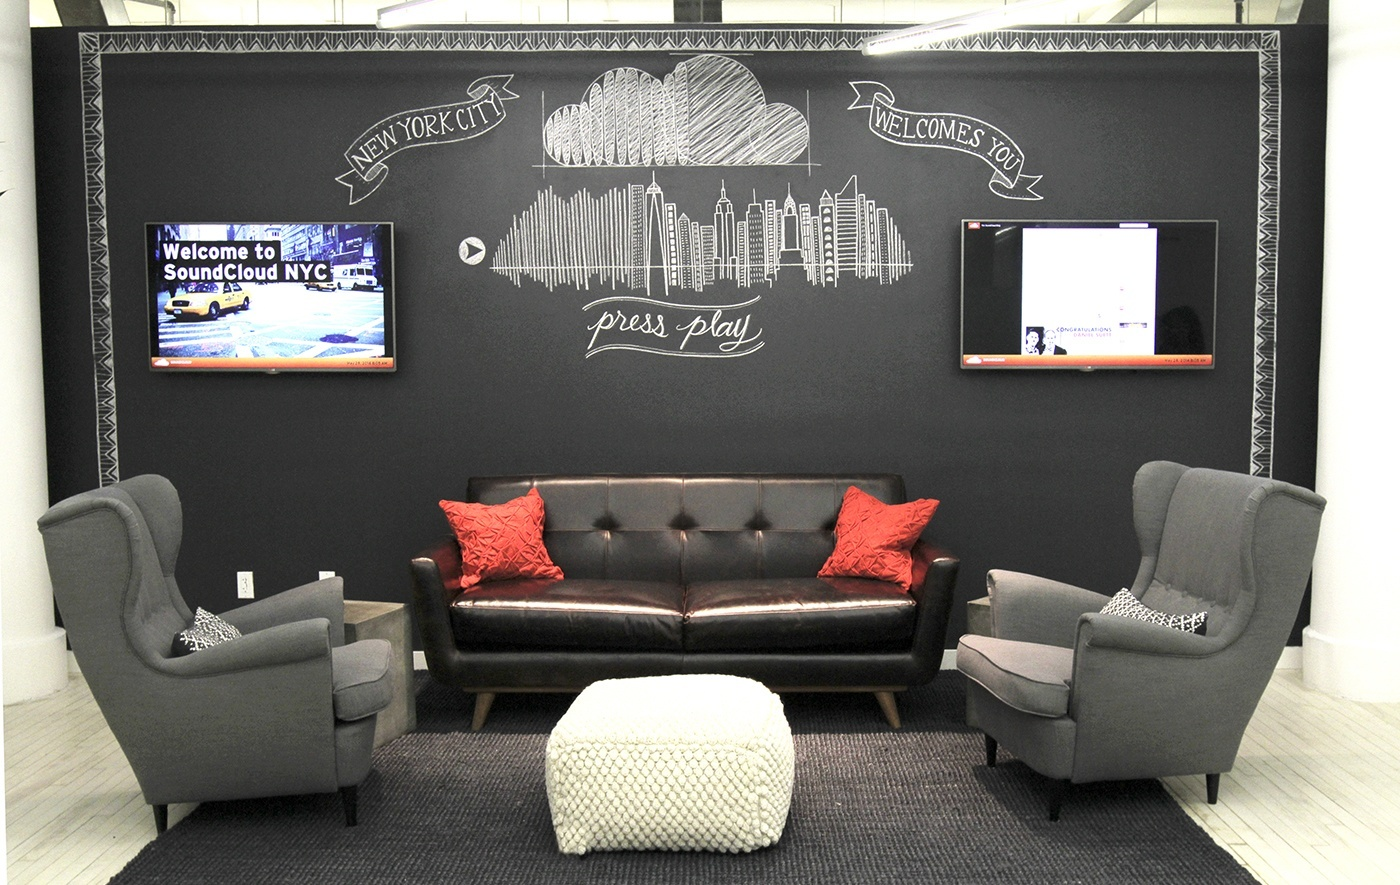 Take a Look at SoundCloud's New Office in New York City